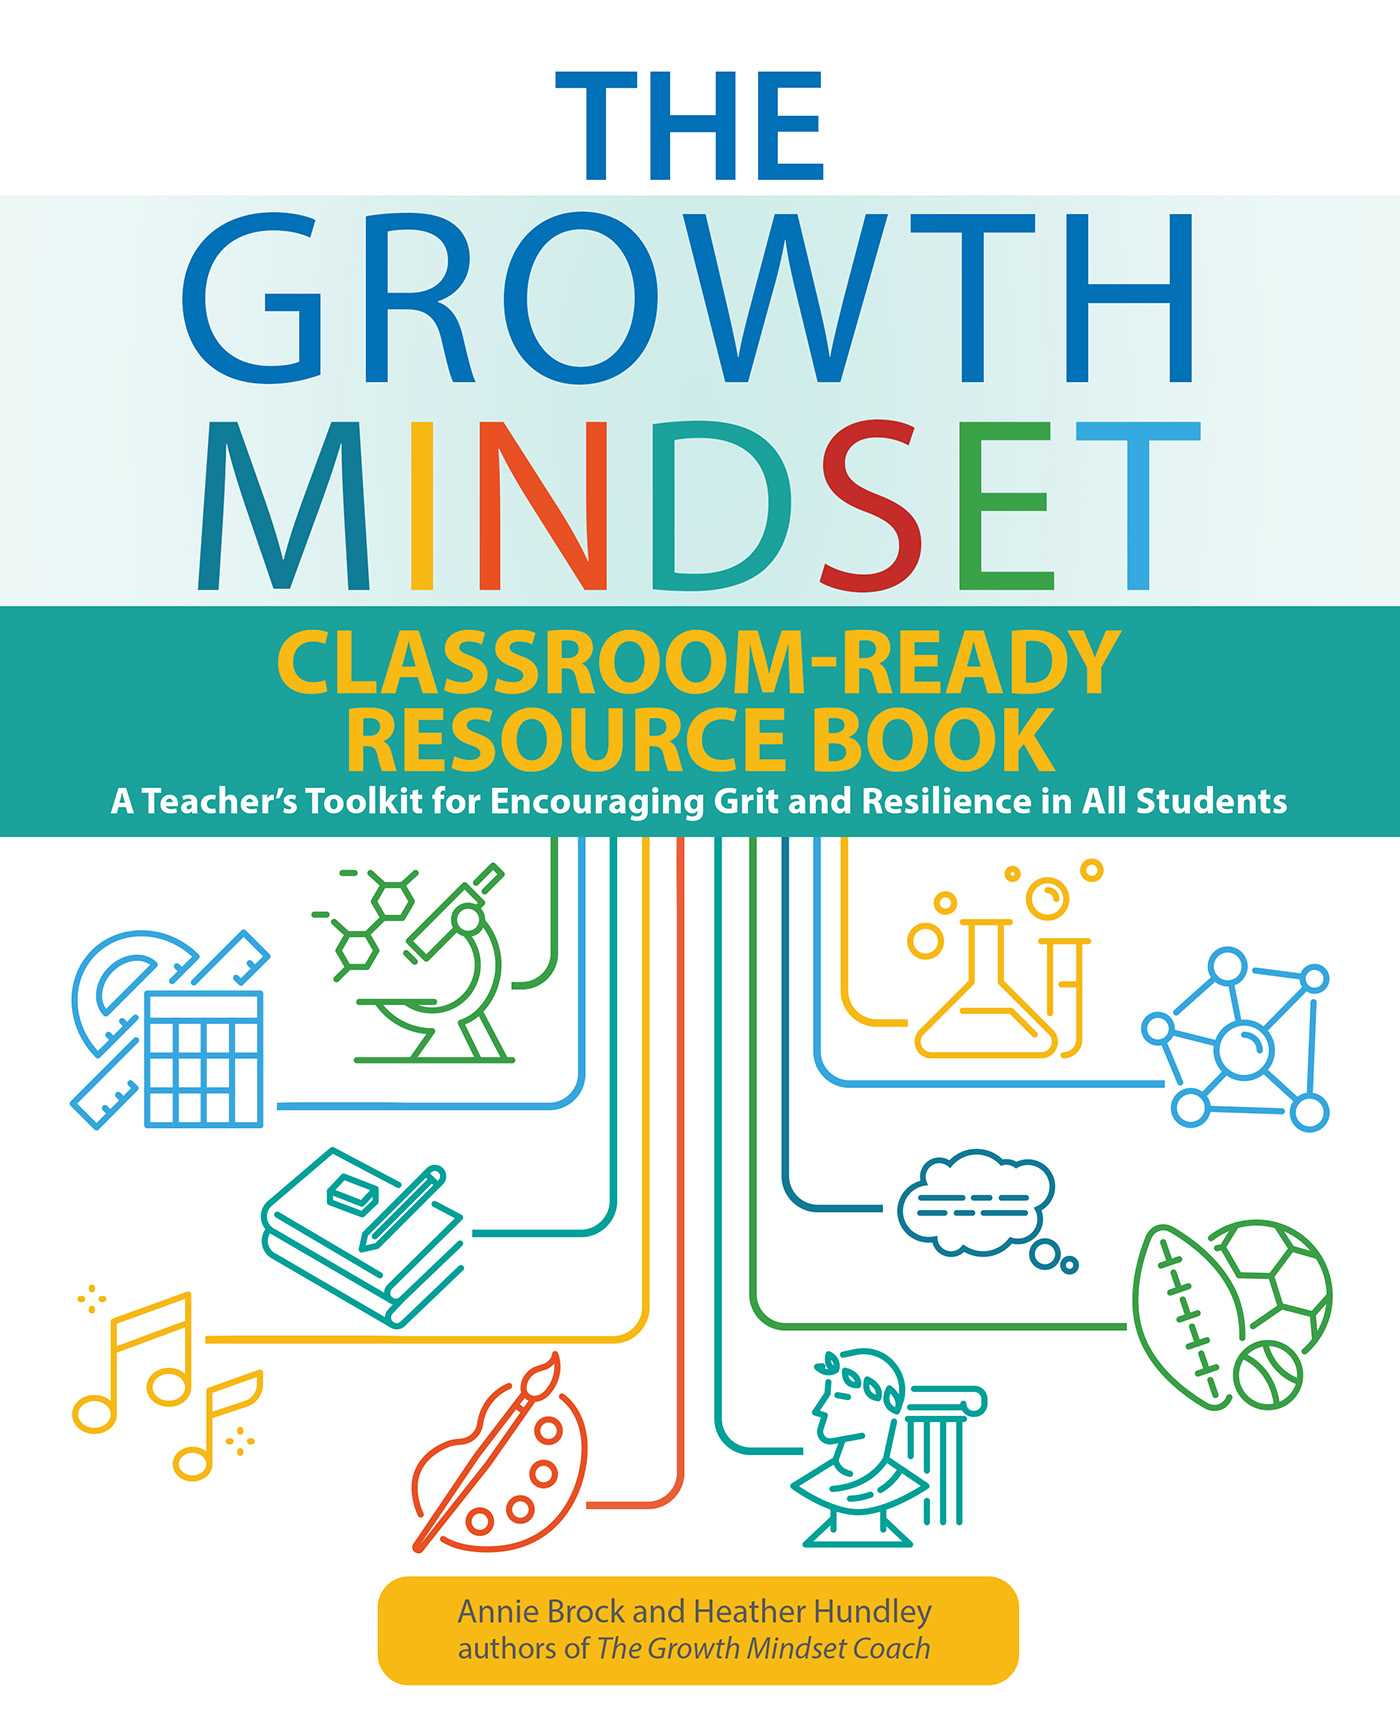 [PDF] [EPUB] The Growth Mindset Classroom-Ready Resource Book: A Teacher's Toolkit for For Encouraging Grit and Resilience in All Students Download by Annie Brock